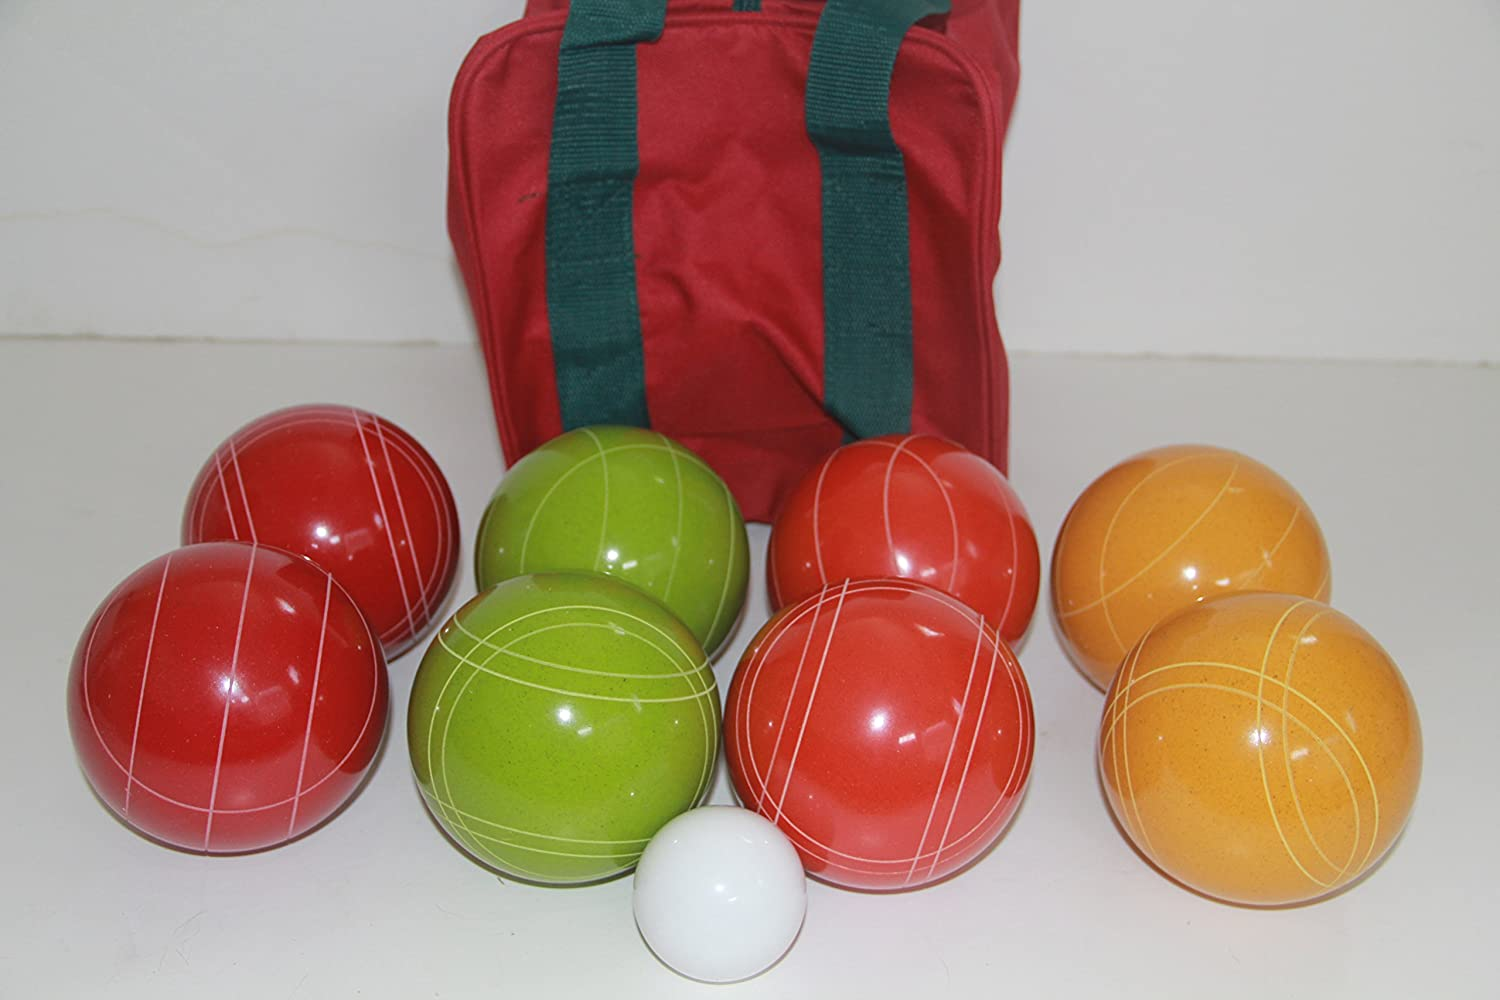 Premium Quality and Italian/American Made, 110mm EPCO Bocce Set - Rustic Yellow/Orange/Red/Greenballs and Maroon/Green Bag